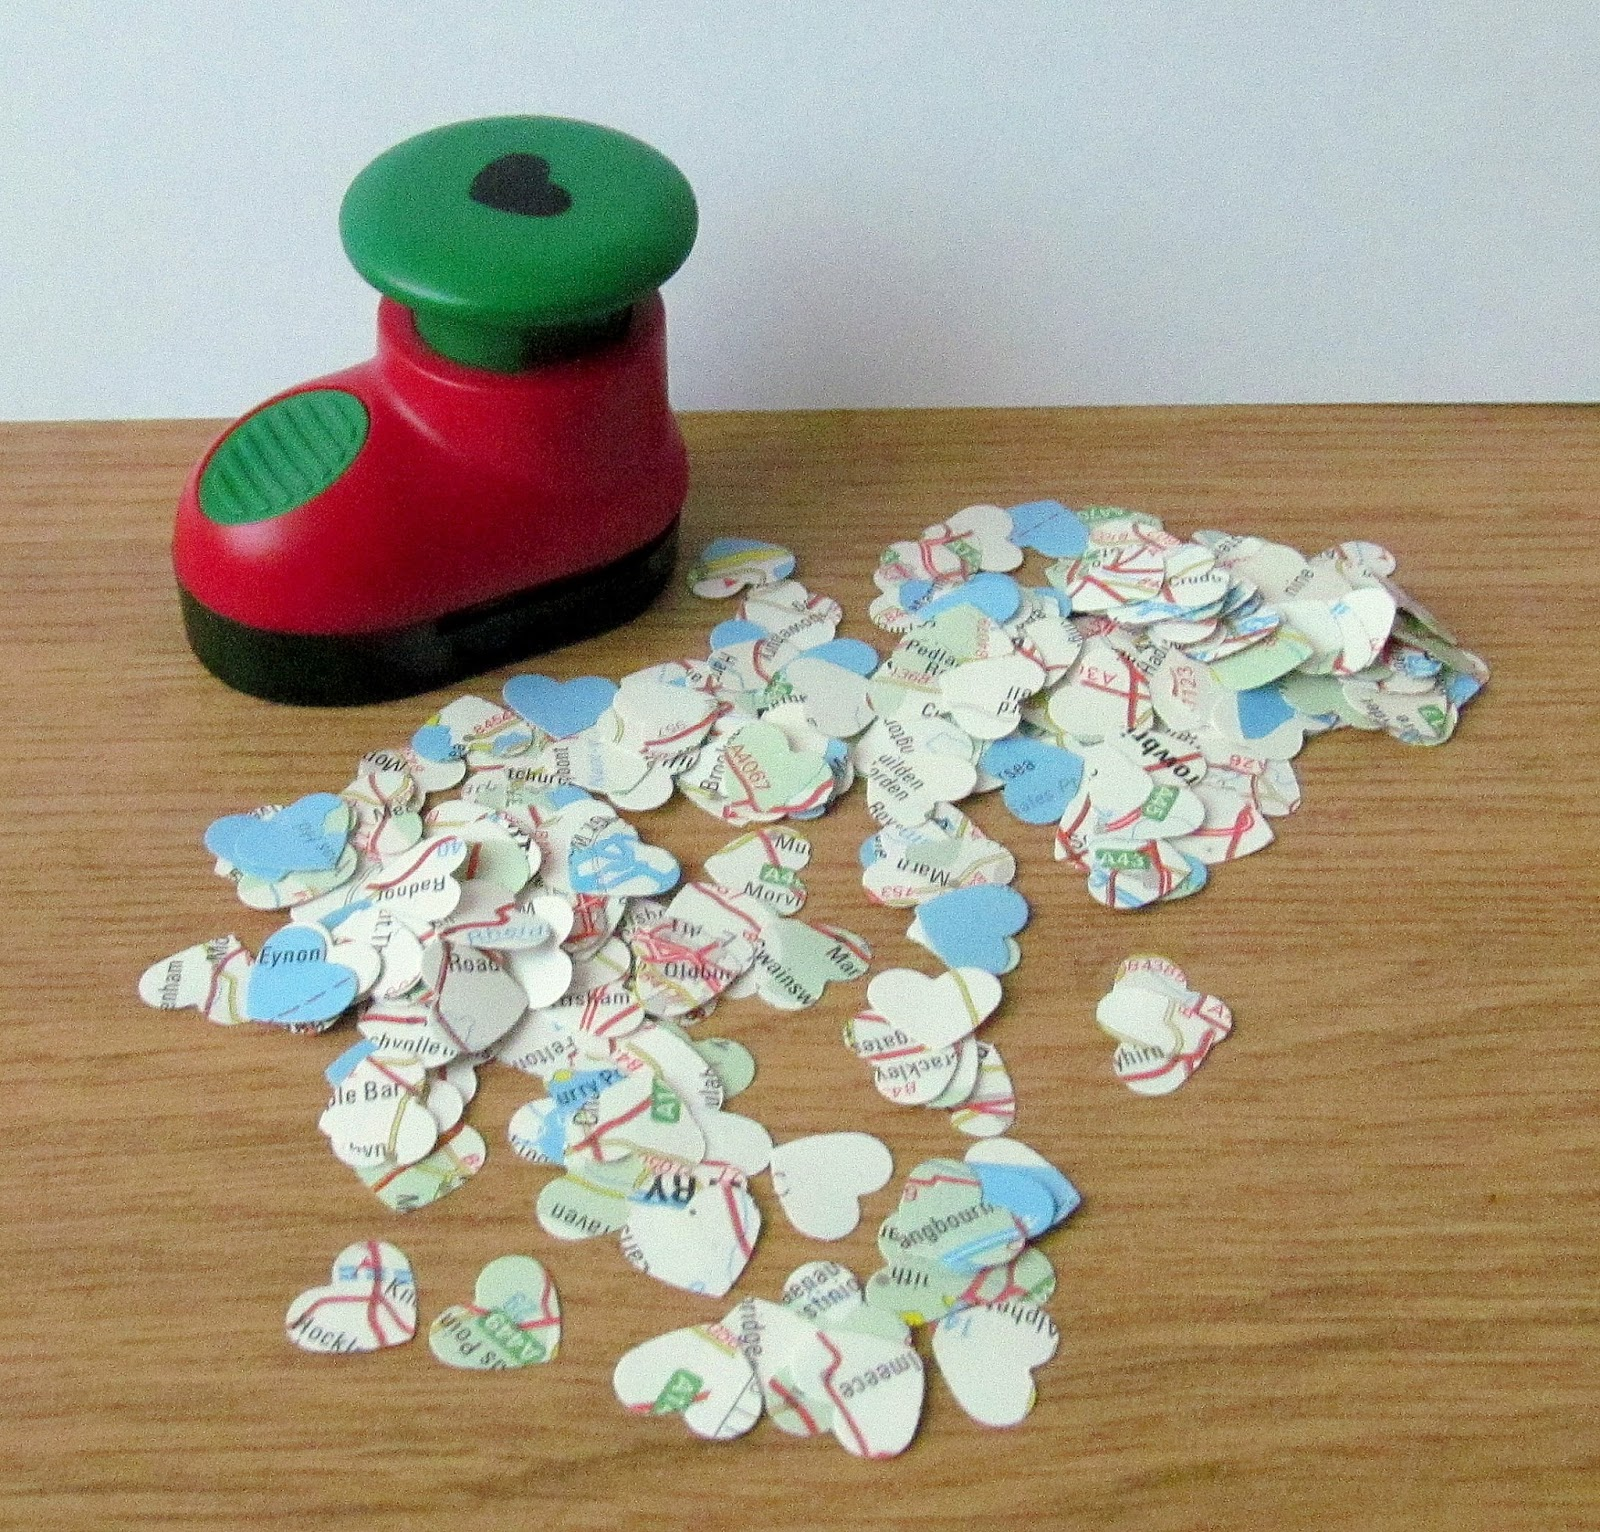 Upcycled table confetti